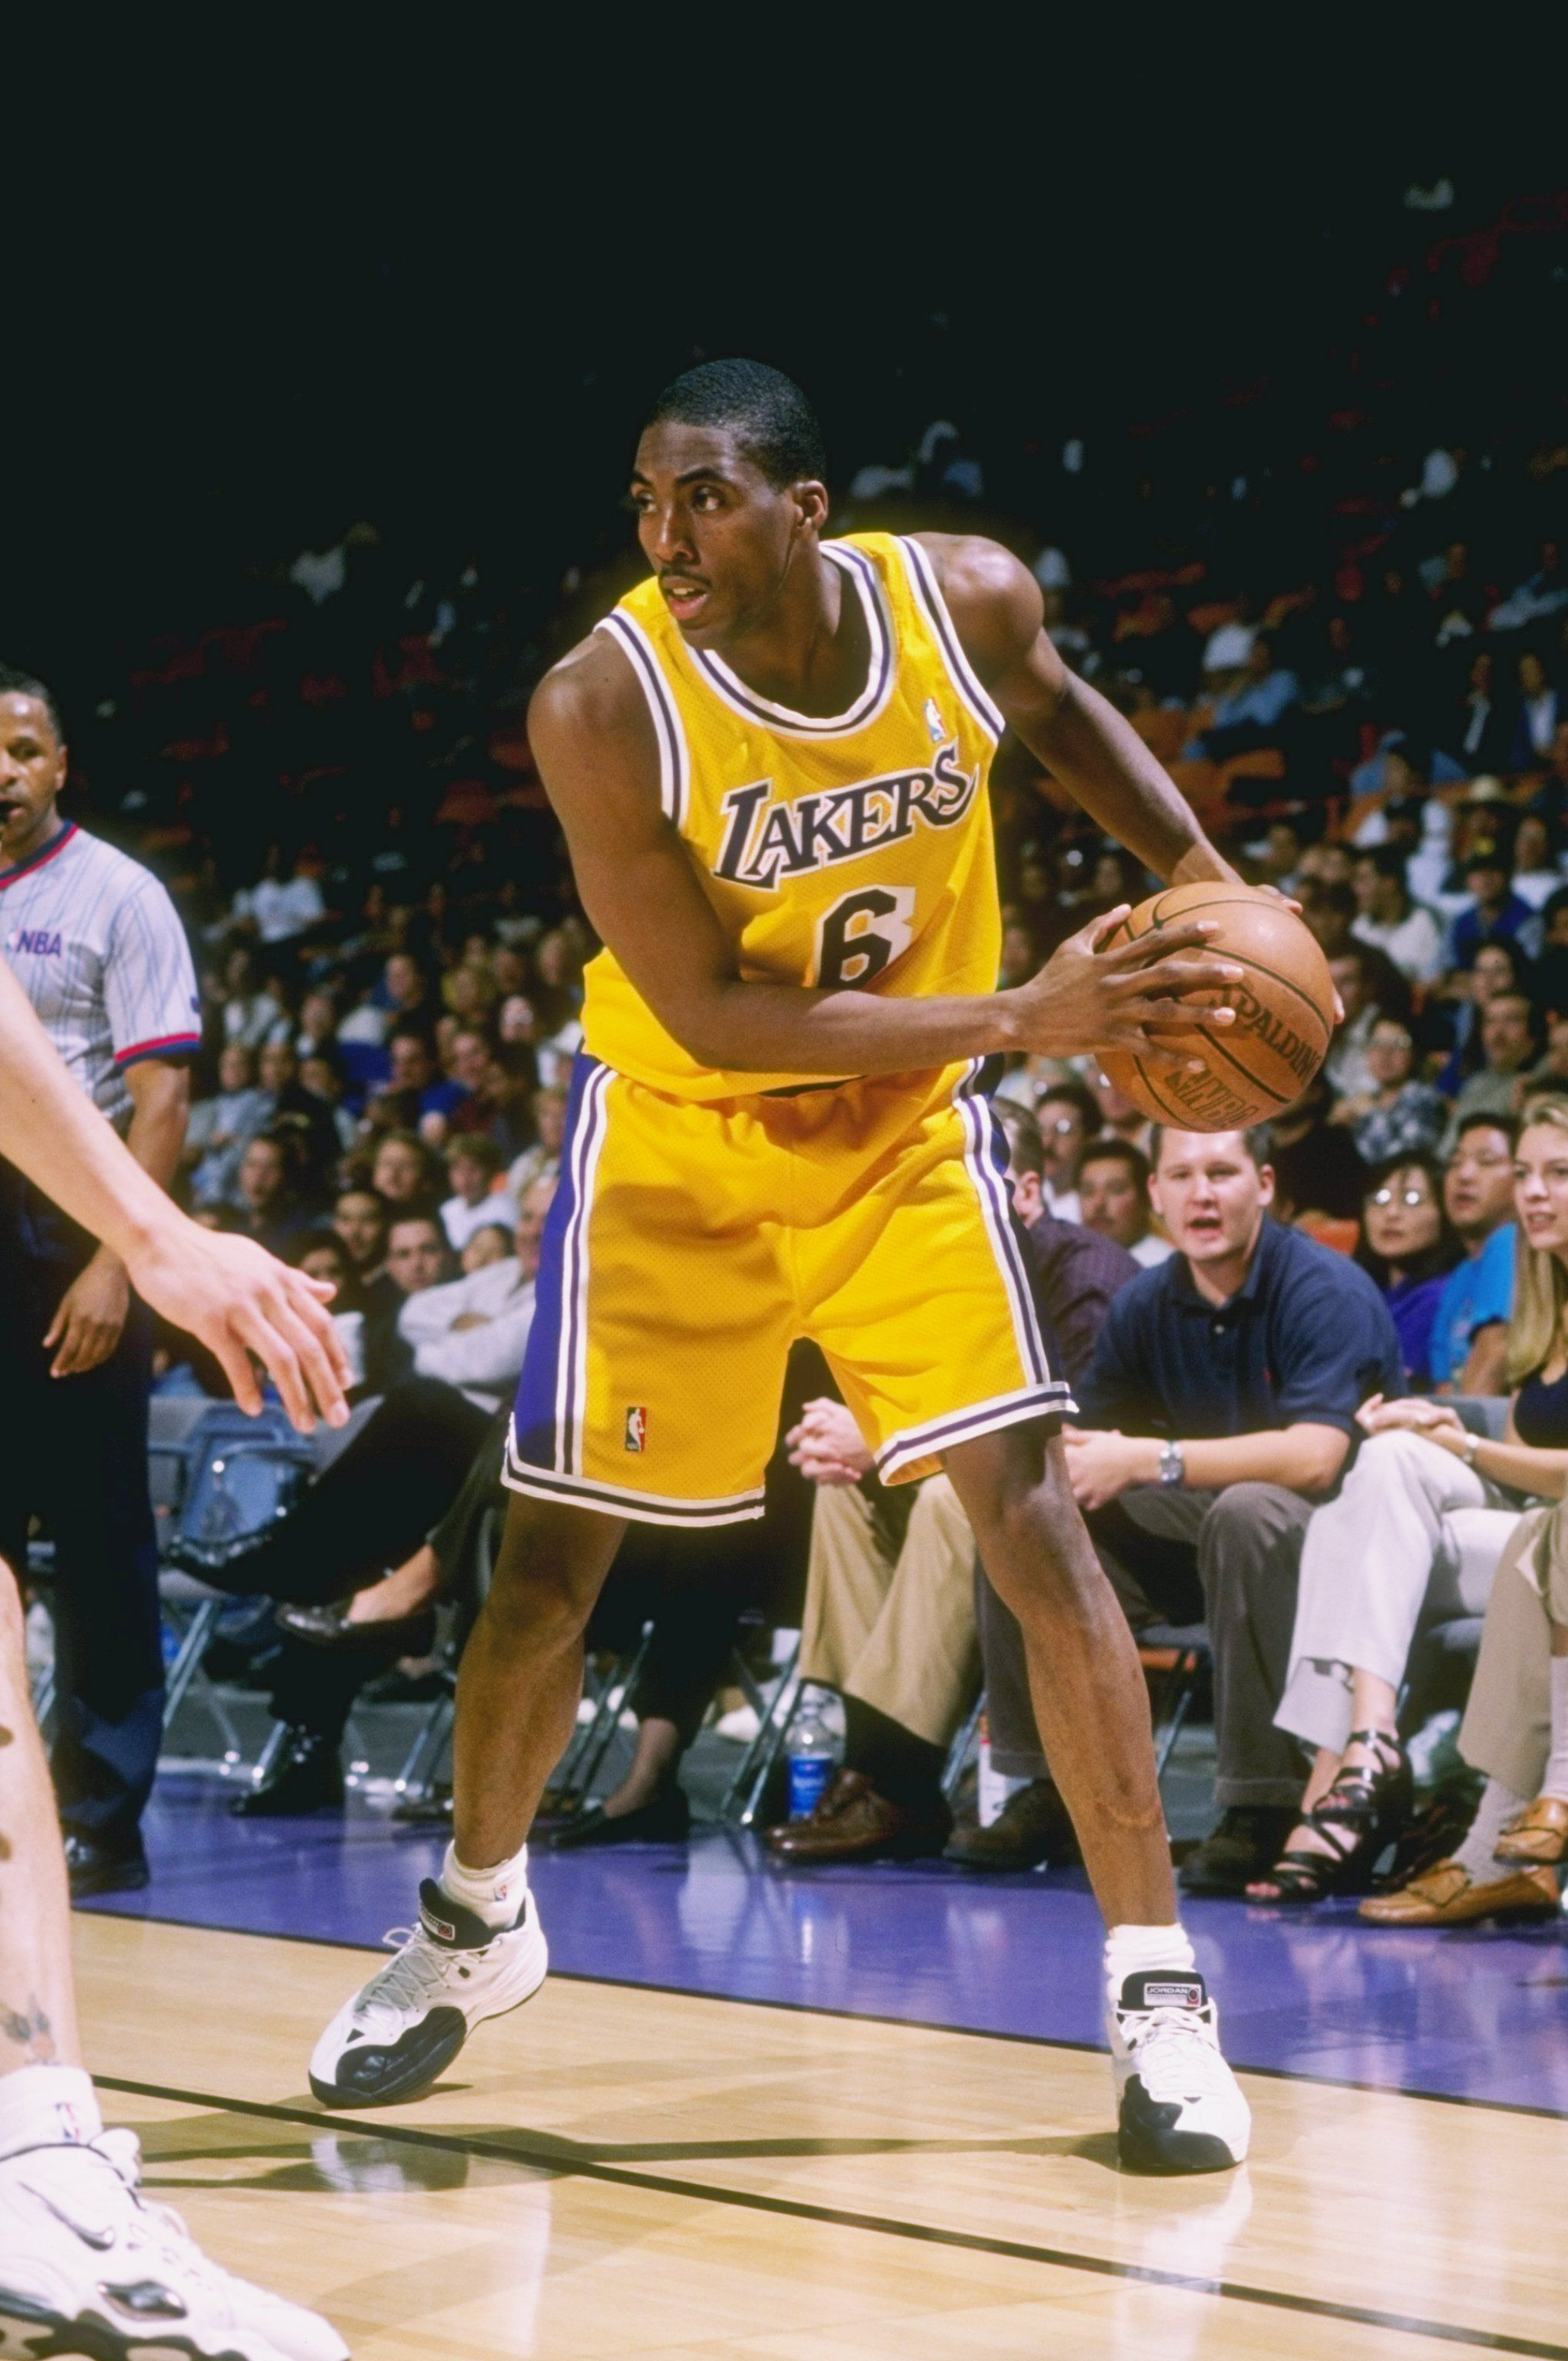 24 Oct 1997 Eddie Jones 6 Of The Los Angeles Lakers In Action During The Lakers 85 79 Win Over The Seattle Supersonics At Los Angeles Lakers Lakers La Lakers